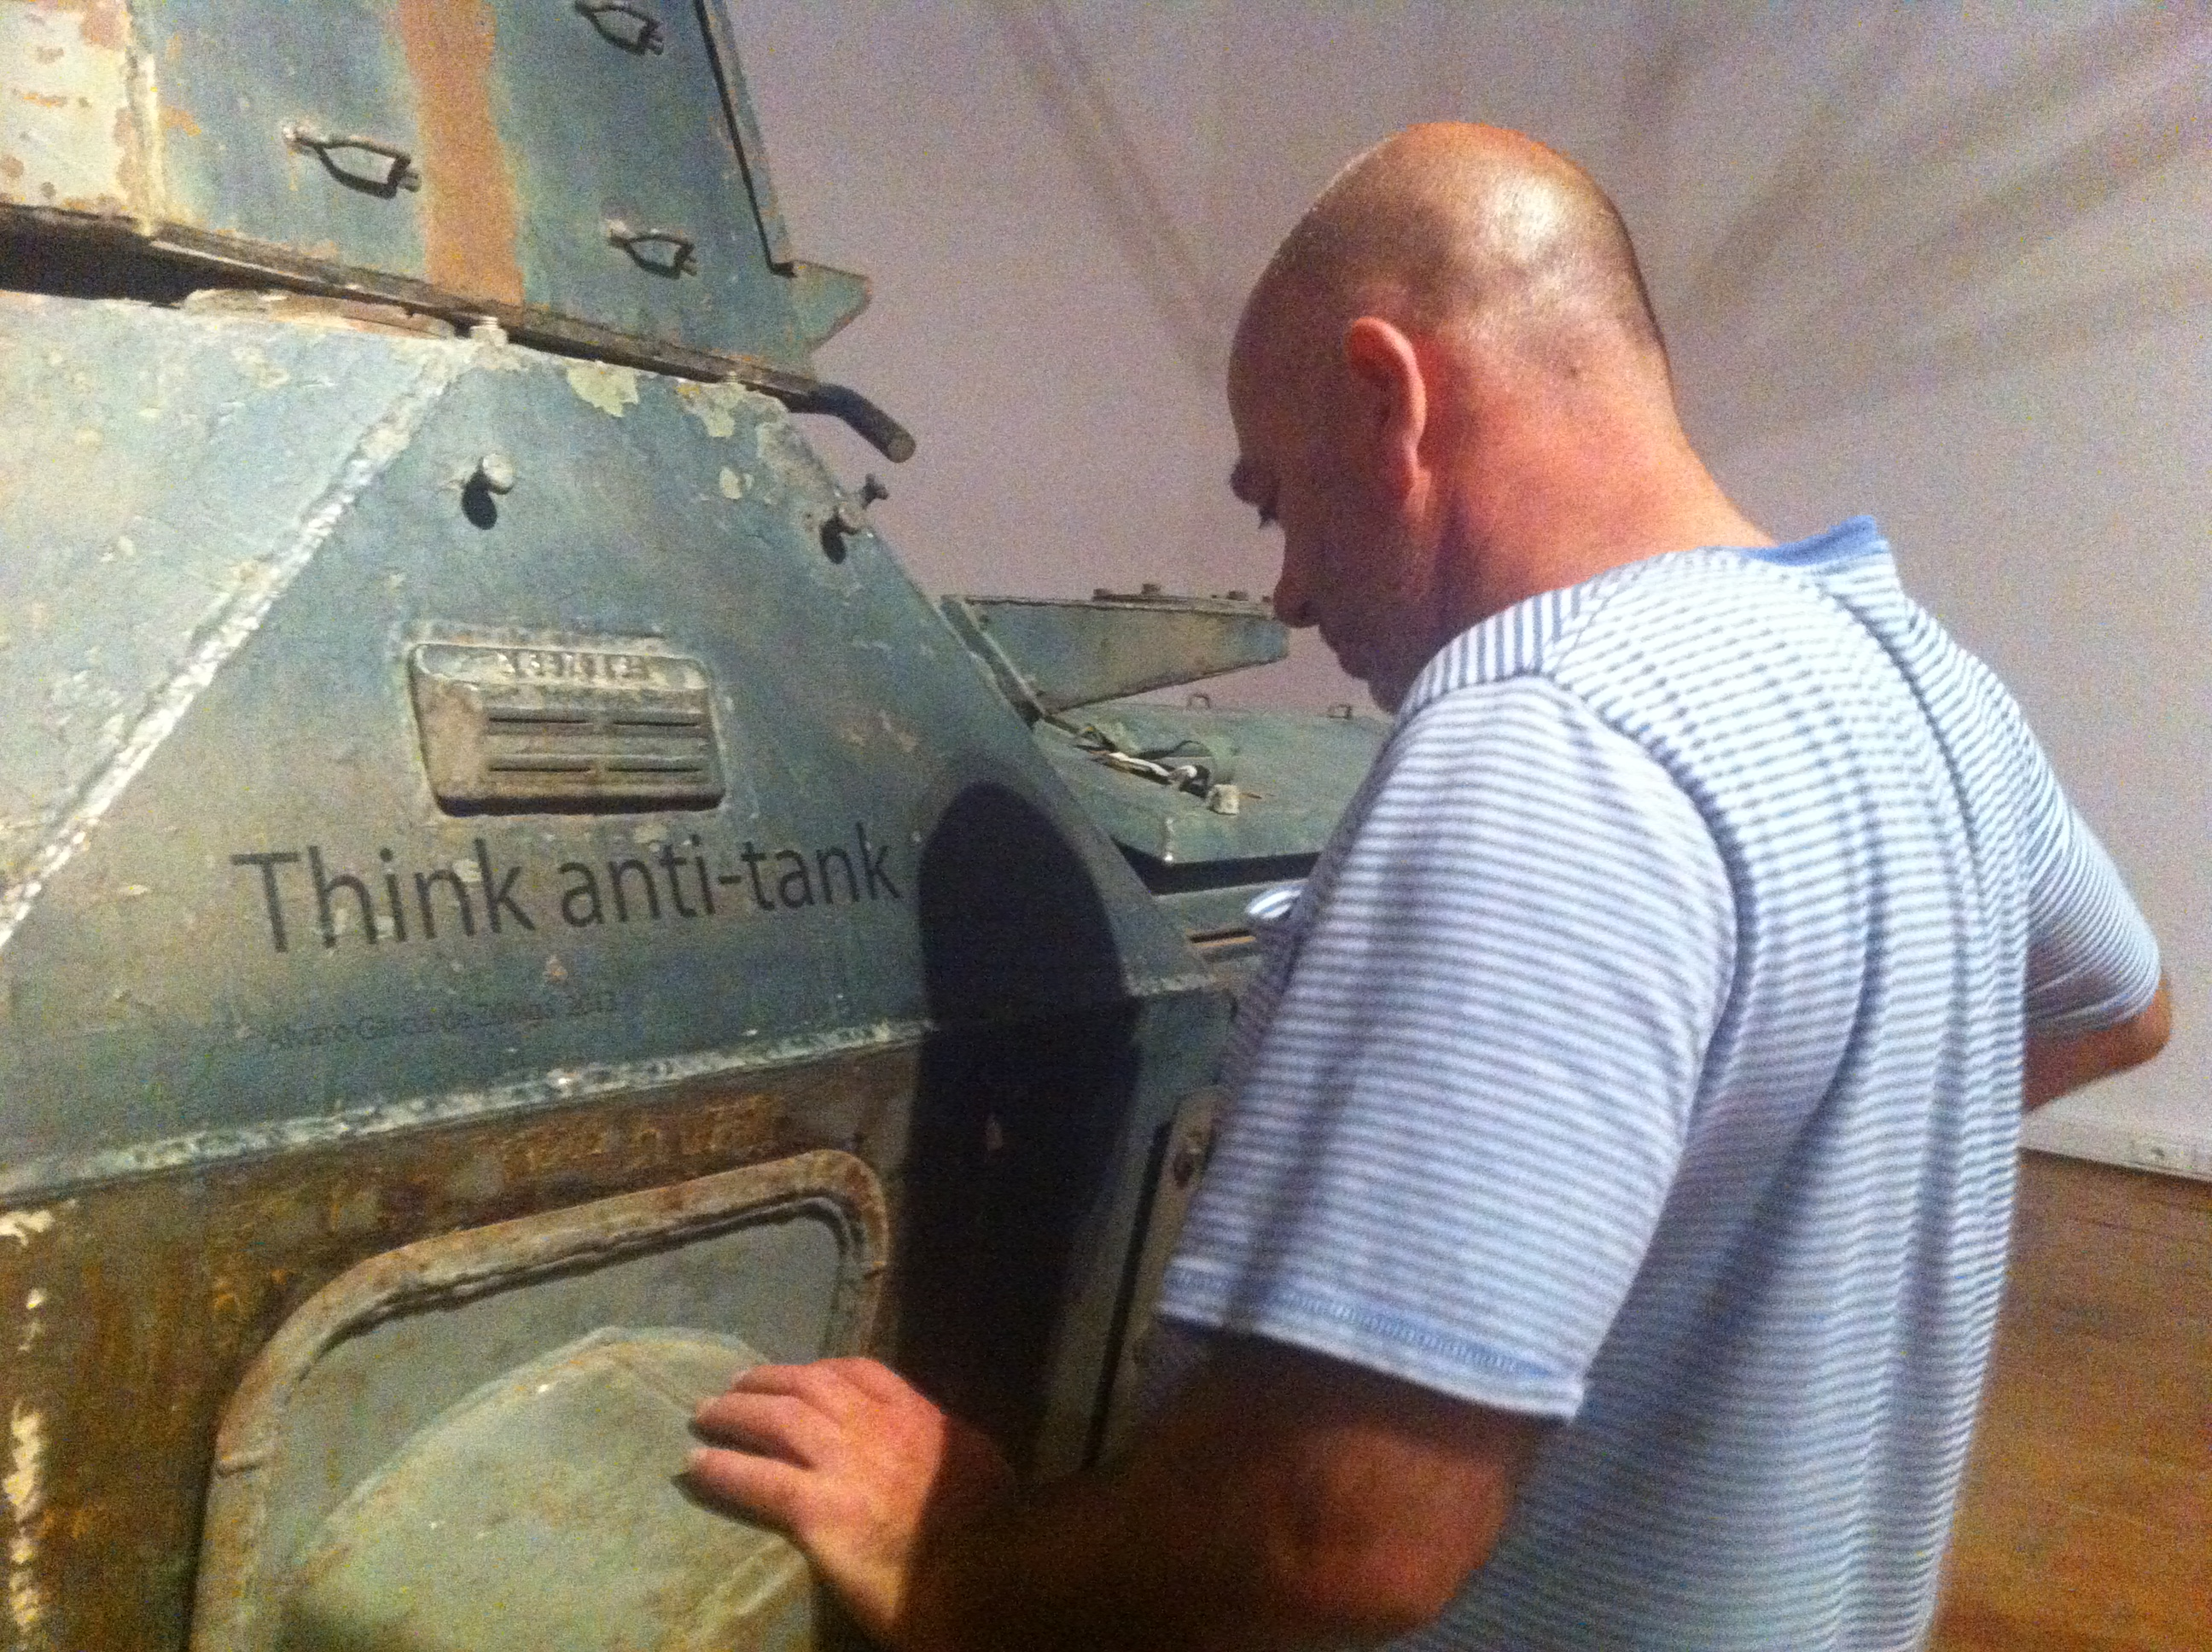 Chaimite anti-tank 2014-09-12.jpg